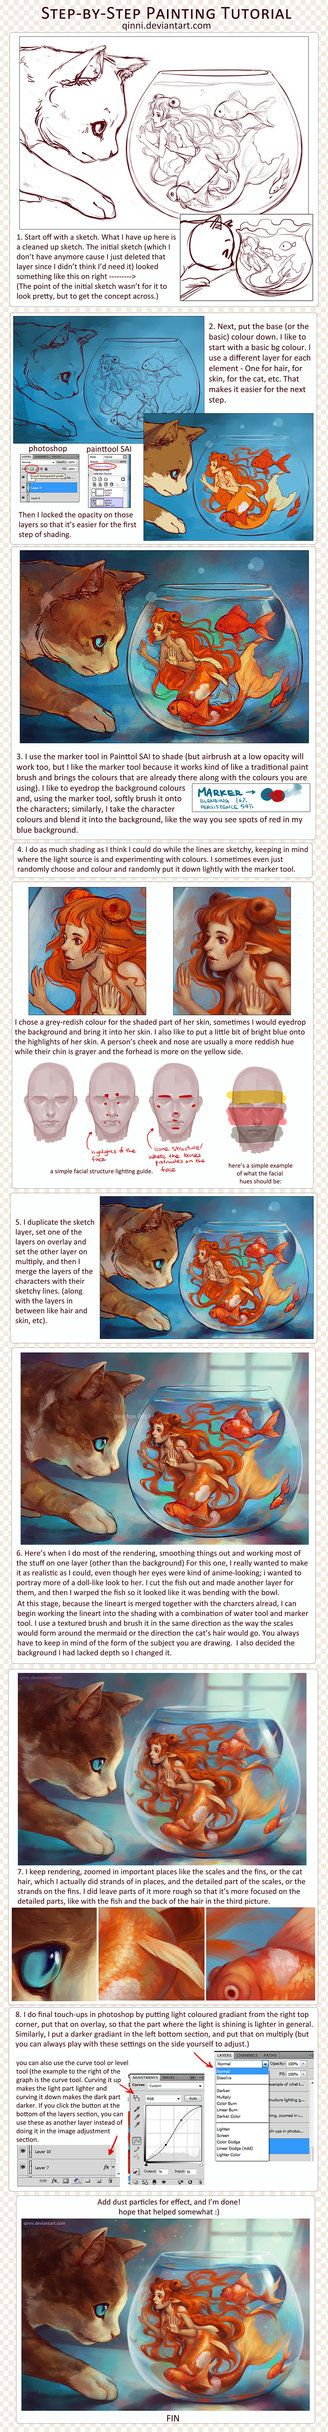 Step-by-Step Digital Painting Tutorial by *Qinni on deviantART